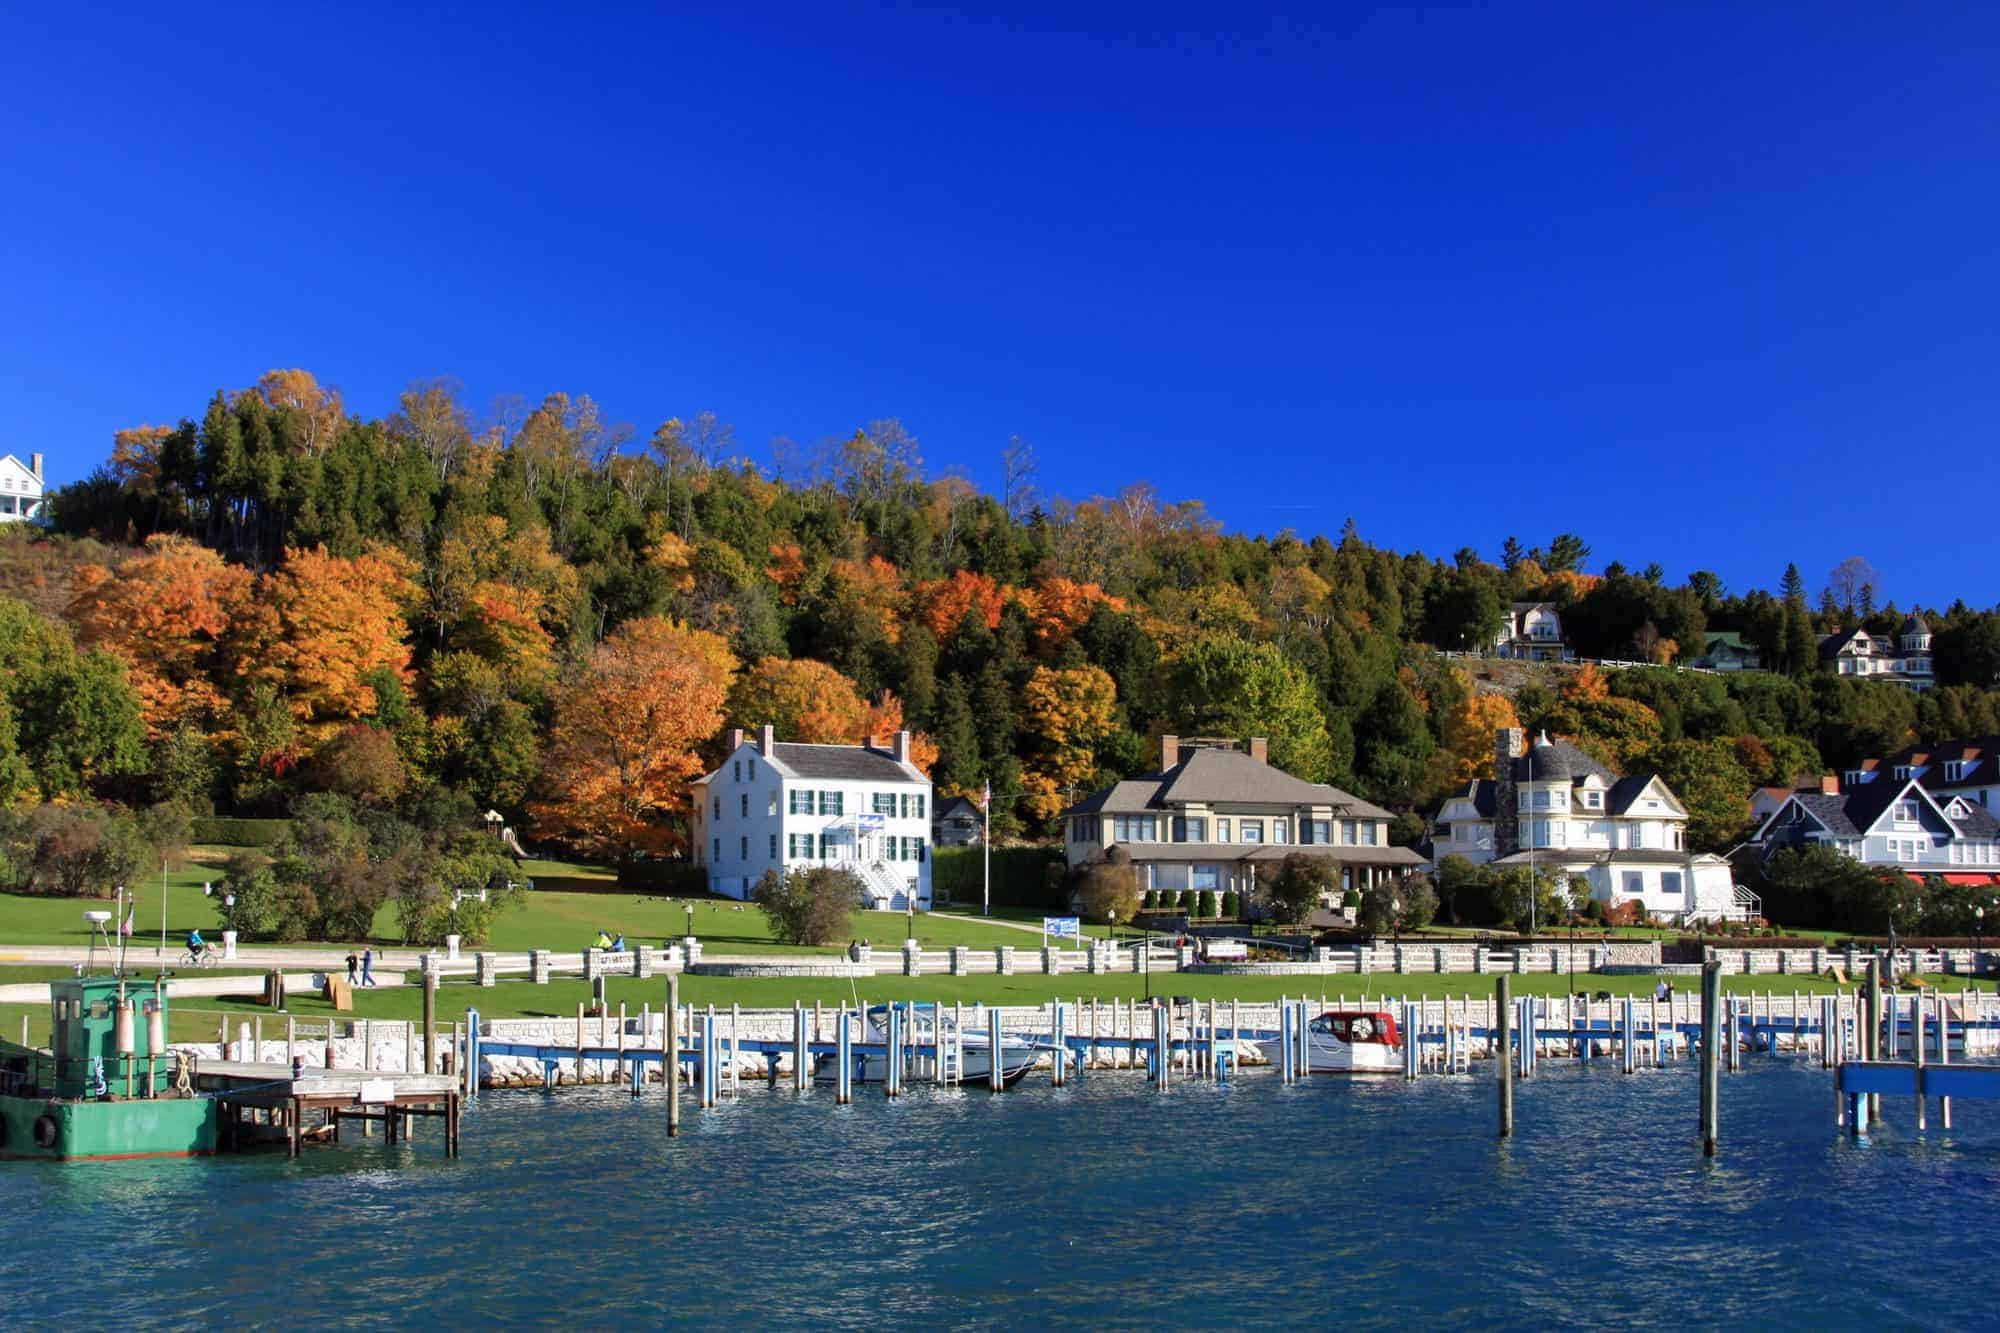 6 Tips for a Fun Weekend on Mackinac Island with Kids